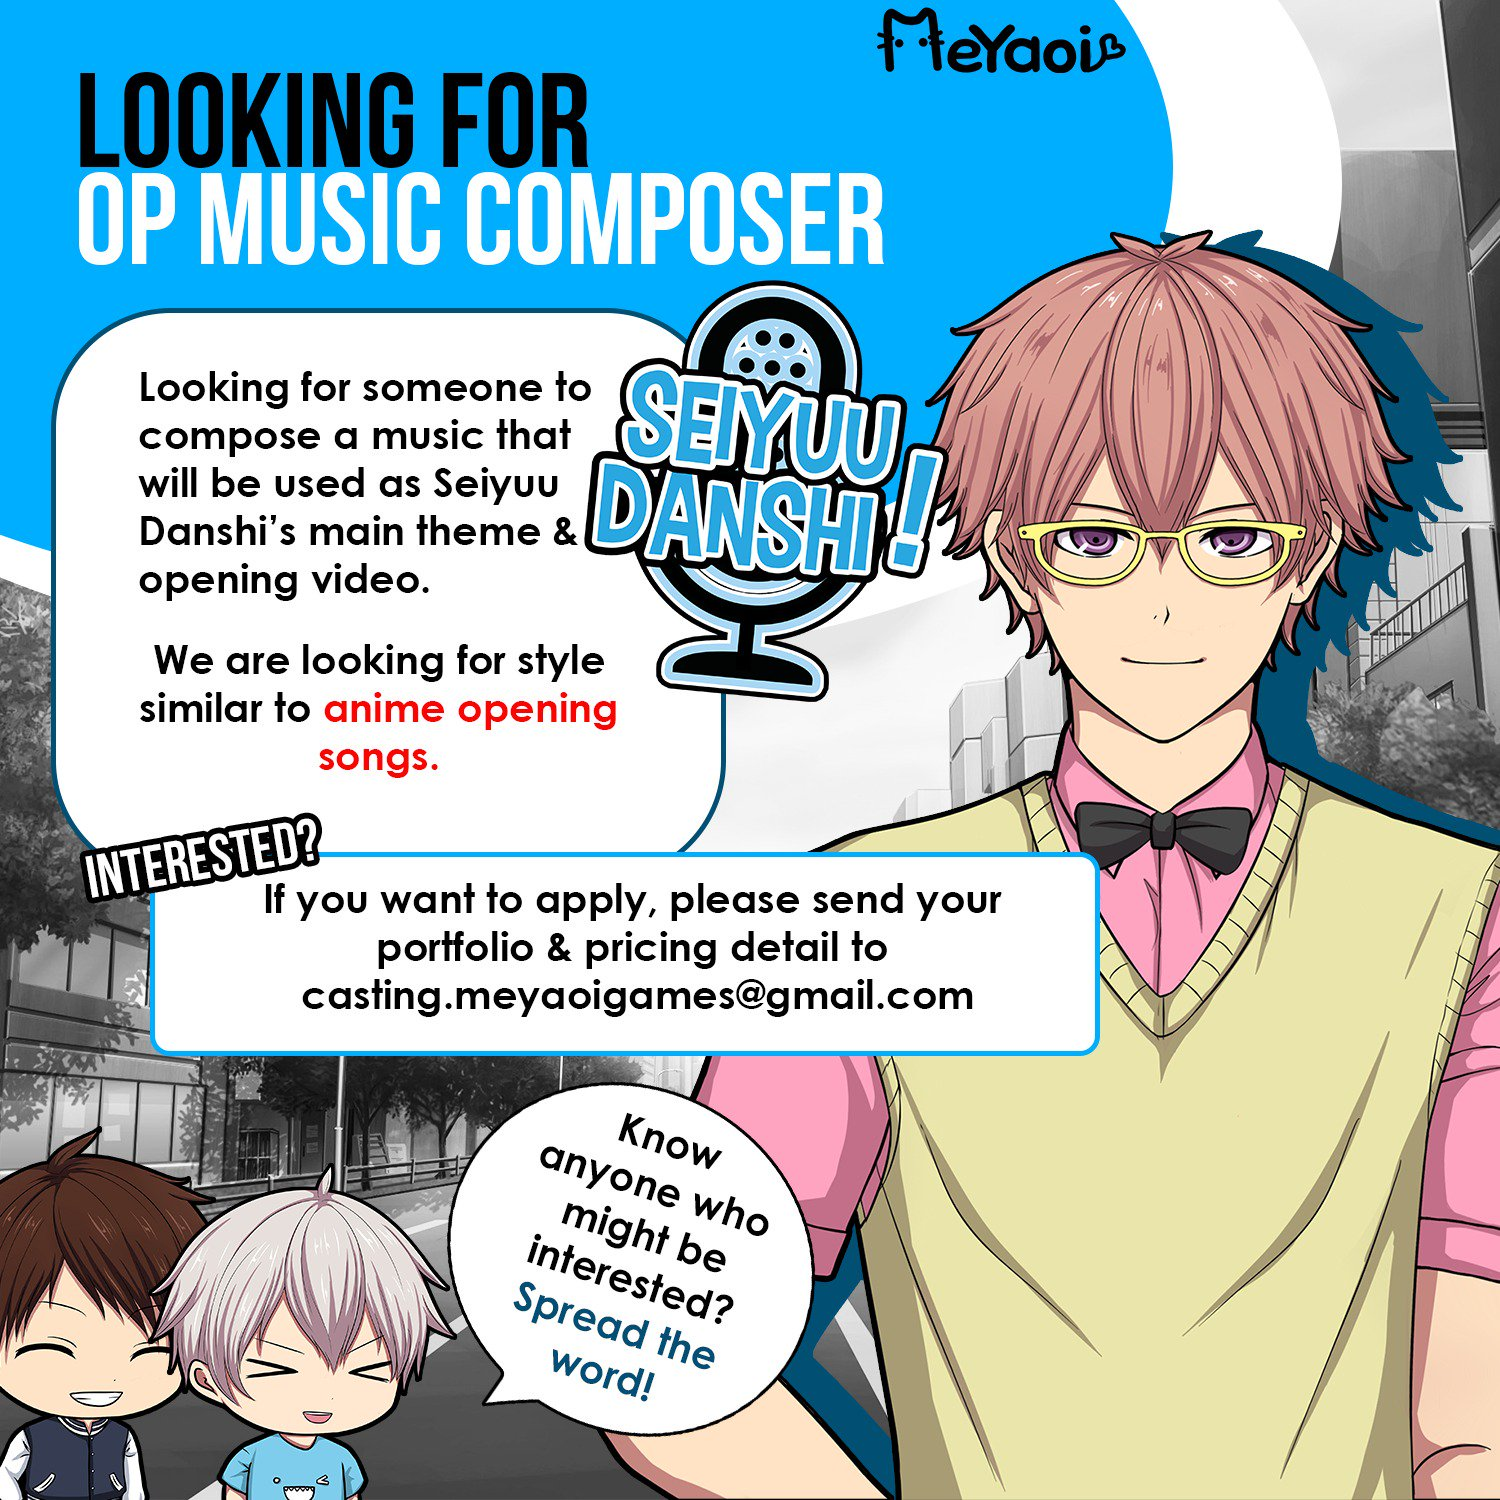 Gmail theme anime - Meyaoi On Twitter Pls Help Rt Looking For Op Music Composer In Style Similar To A Japanese Anime Soundtrack E Mail To Casting Meyaoigames Gmail Com